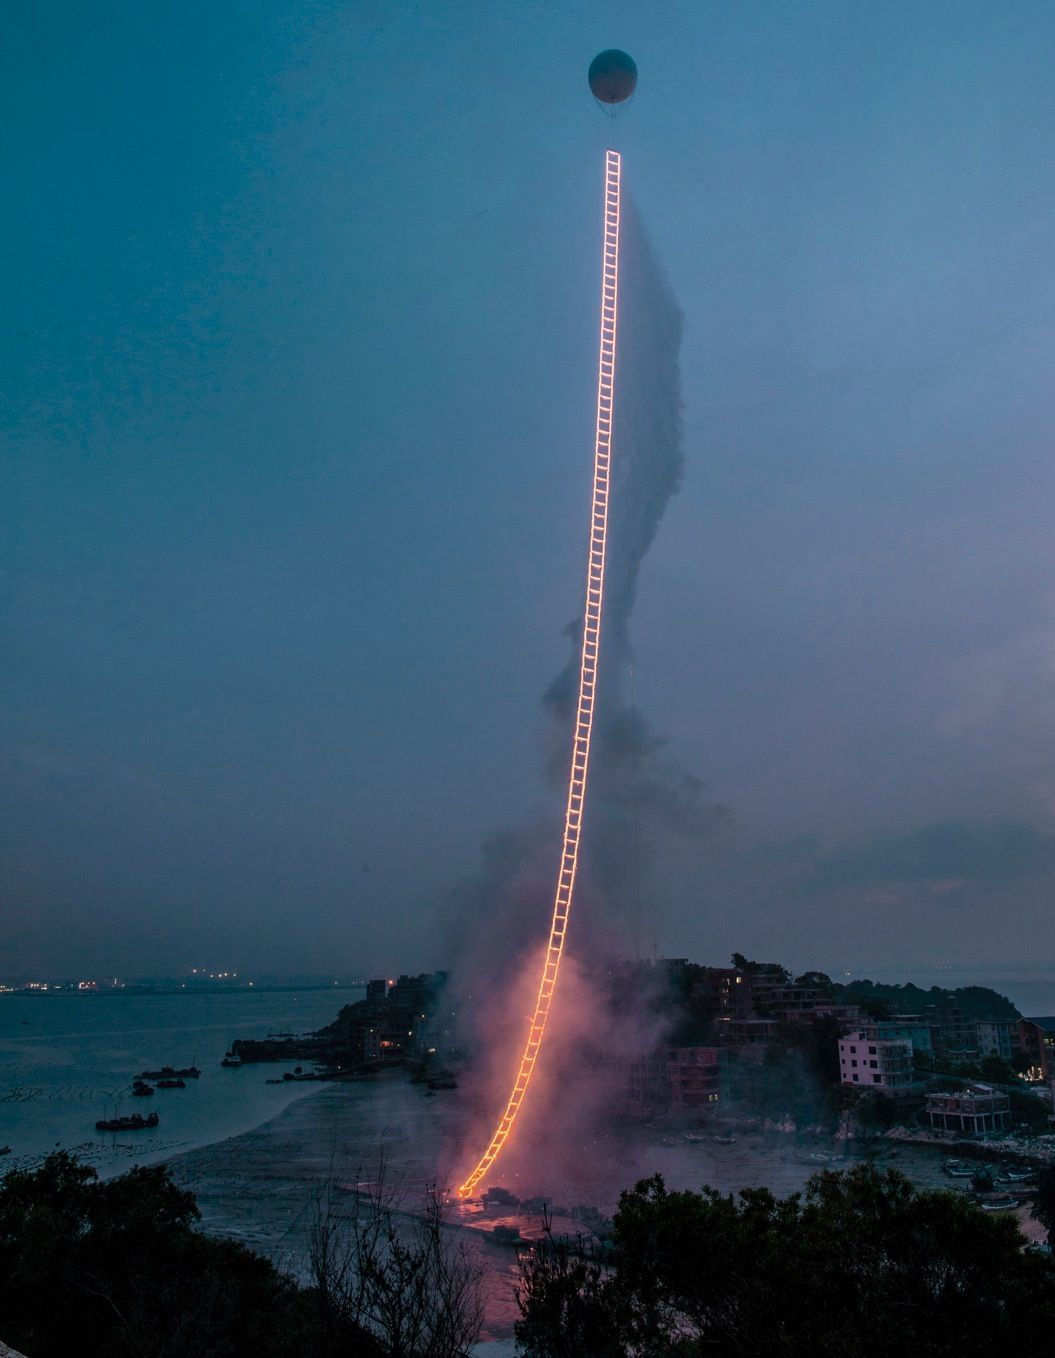 85singo_2015_SkyLadder_A4309_LY_ExplosionEvent_001_cc